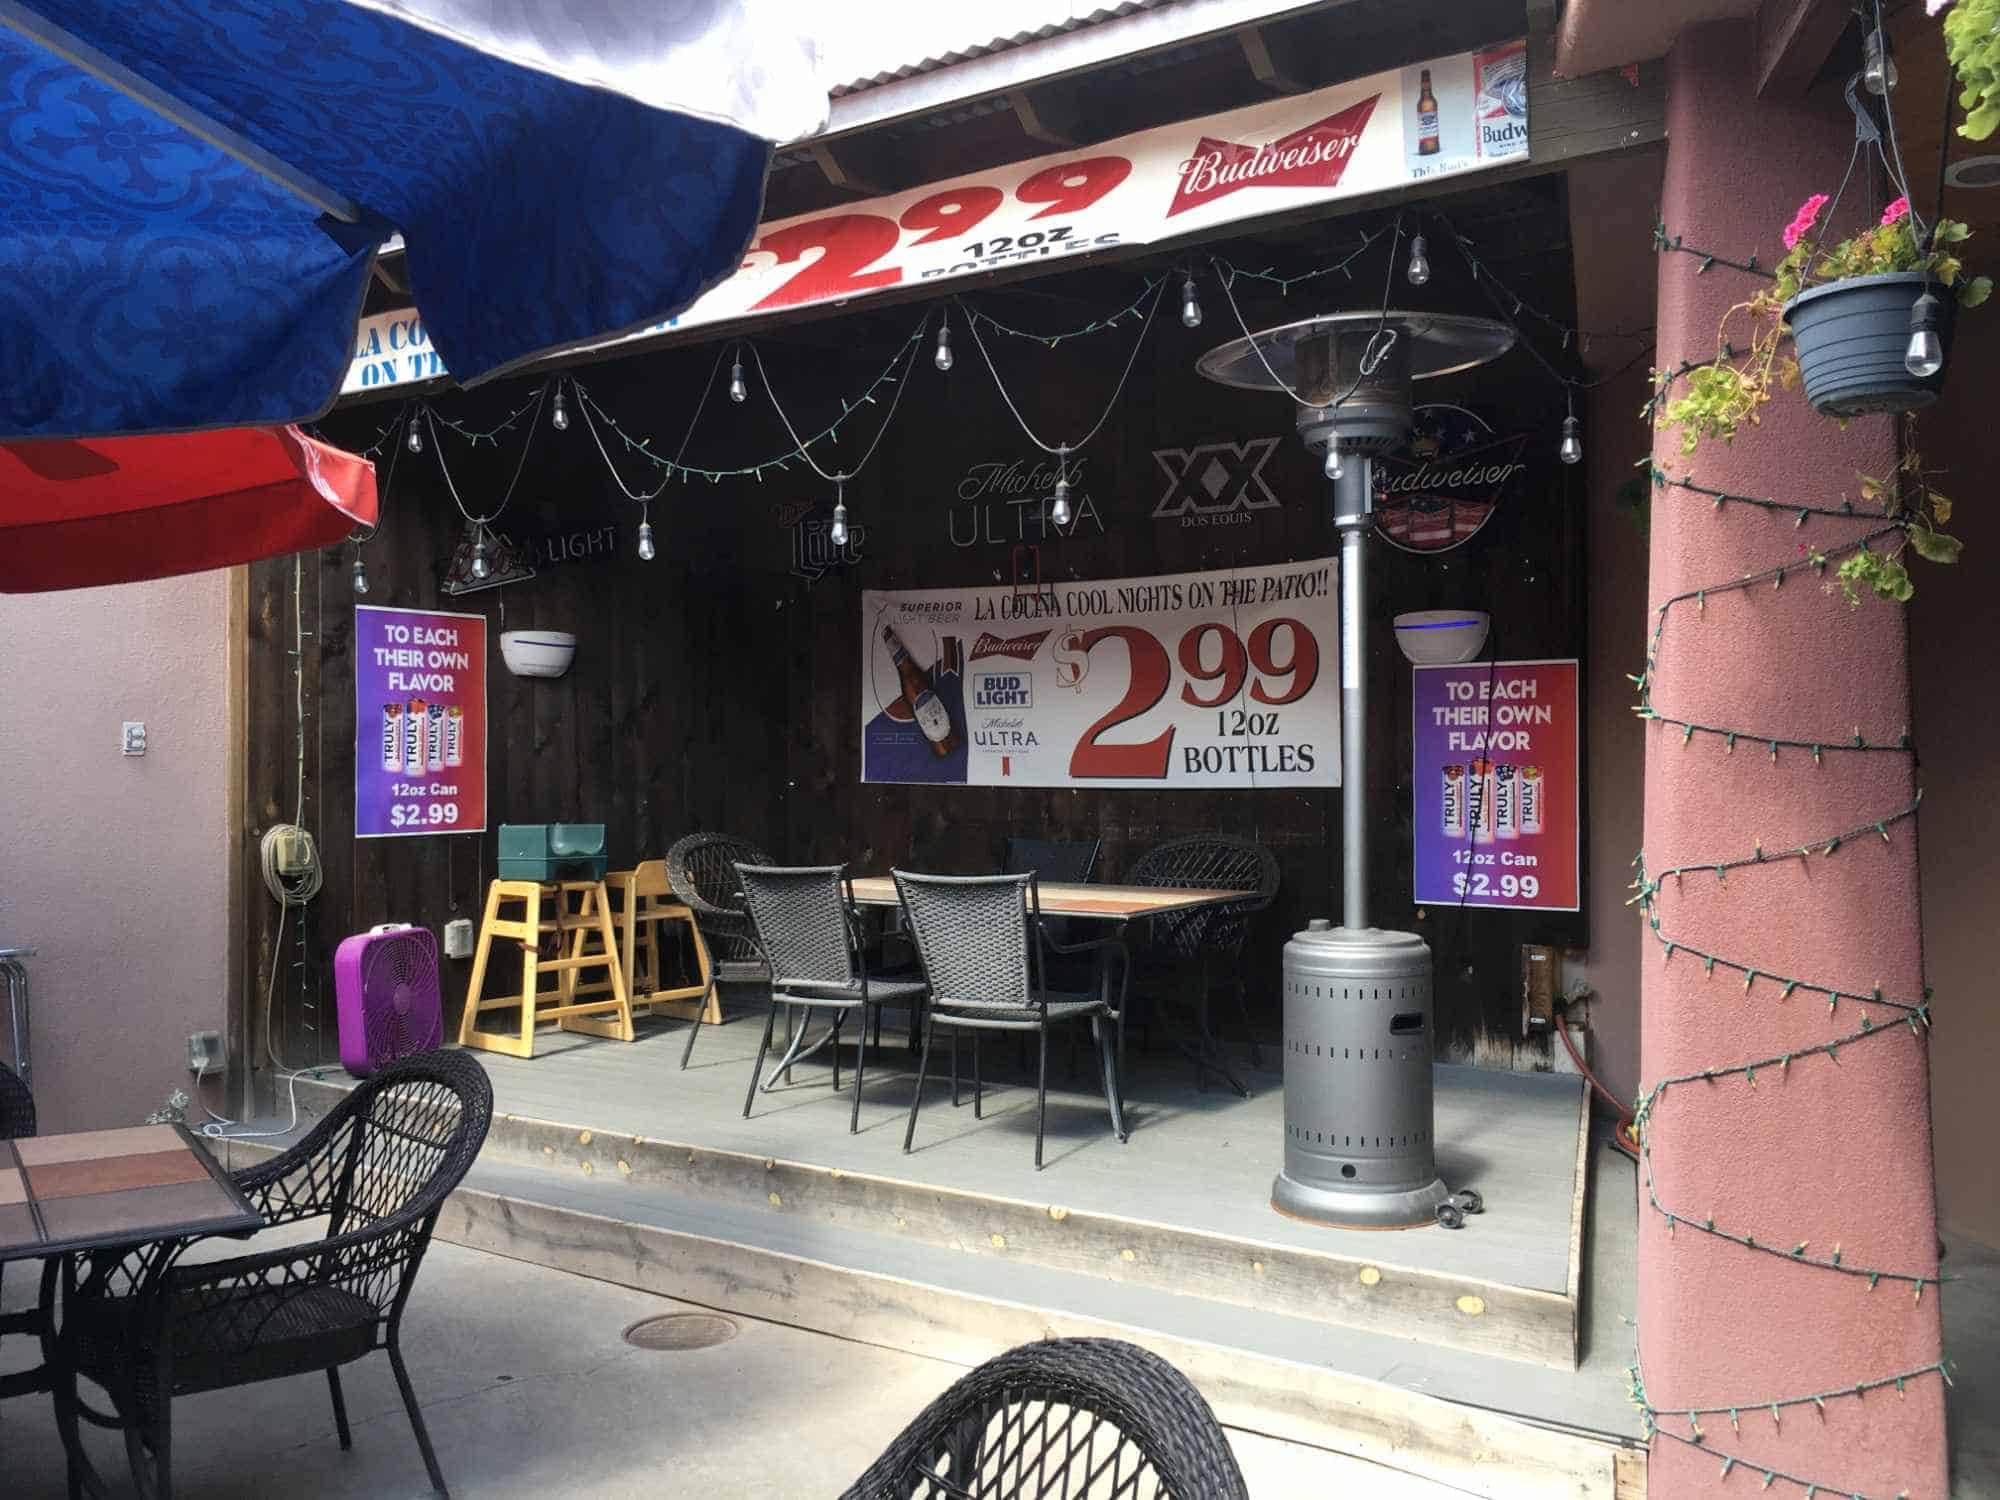 dine outdoors at La Cocina Hot Stuff mexican restaurant in Truth or Consequences